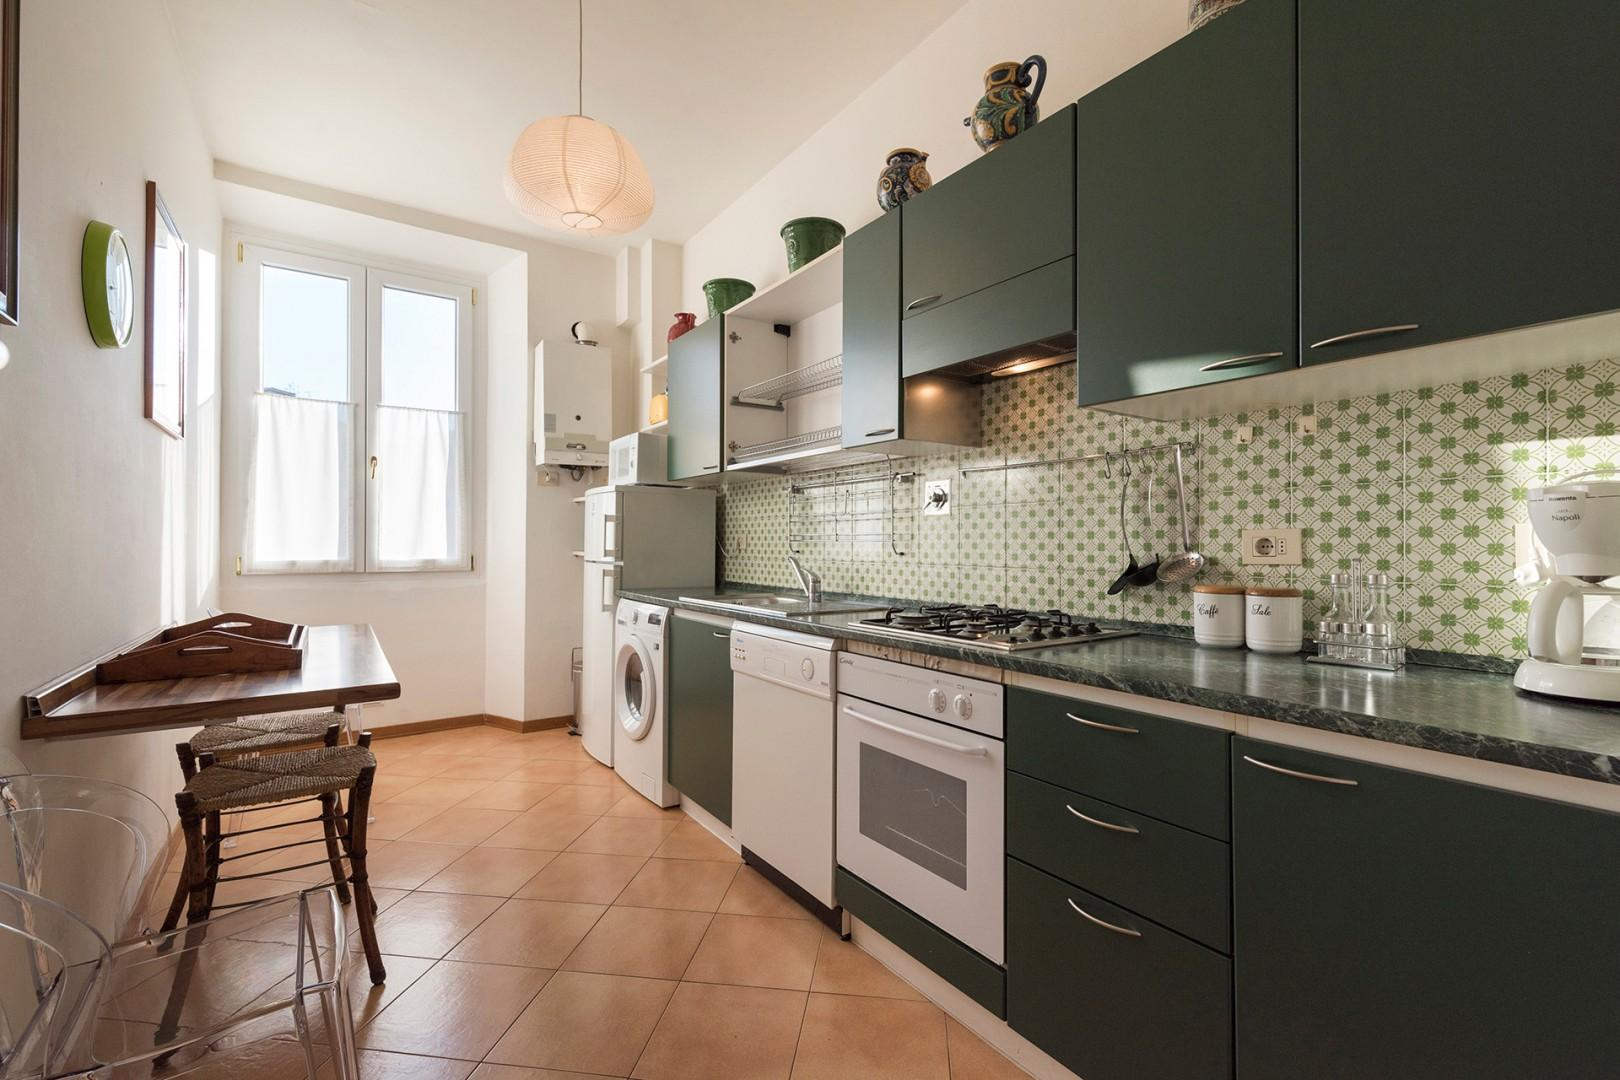 The kitchen is modern and of an adequate size for the apartment.